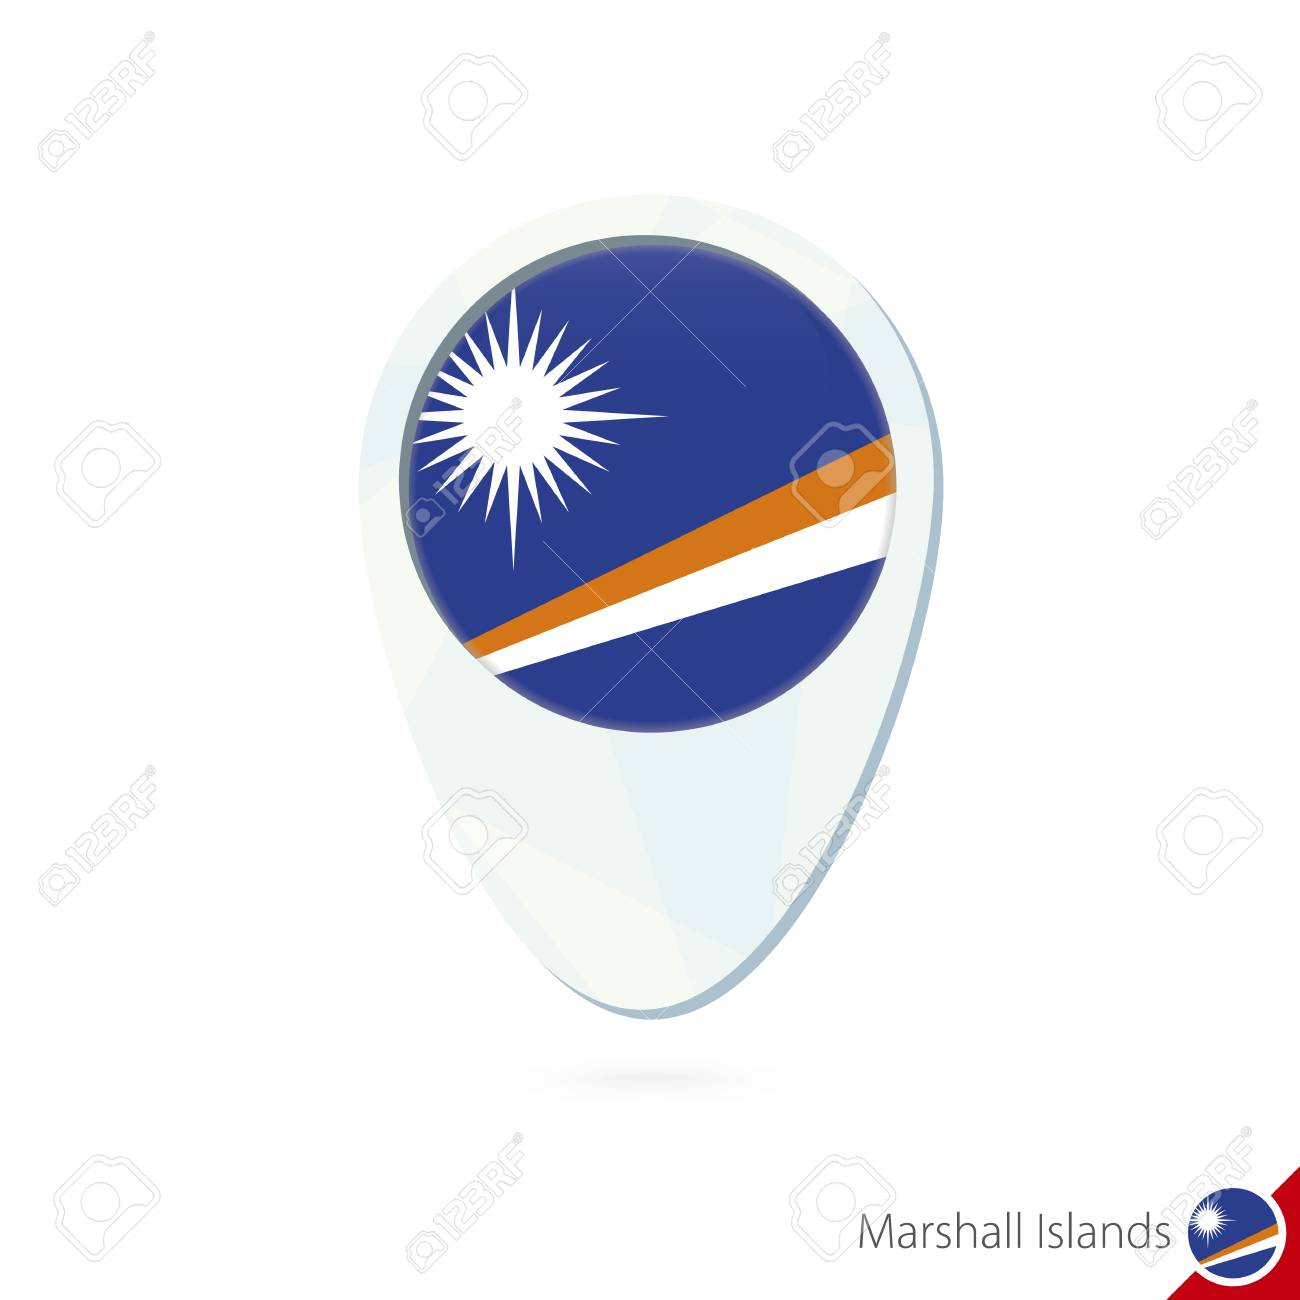 Marshall Islands Flag Location Map Pin Icon On White Background ...